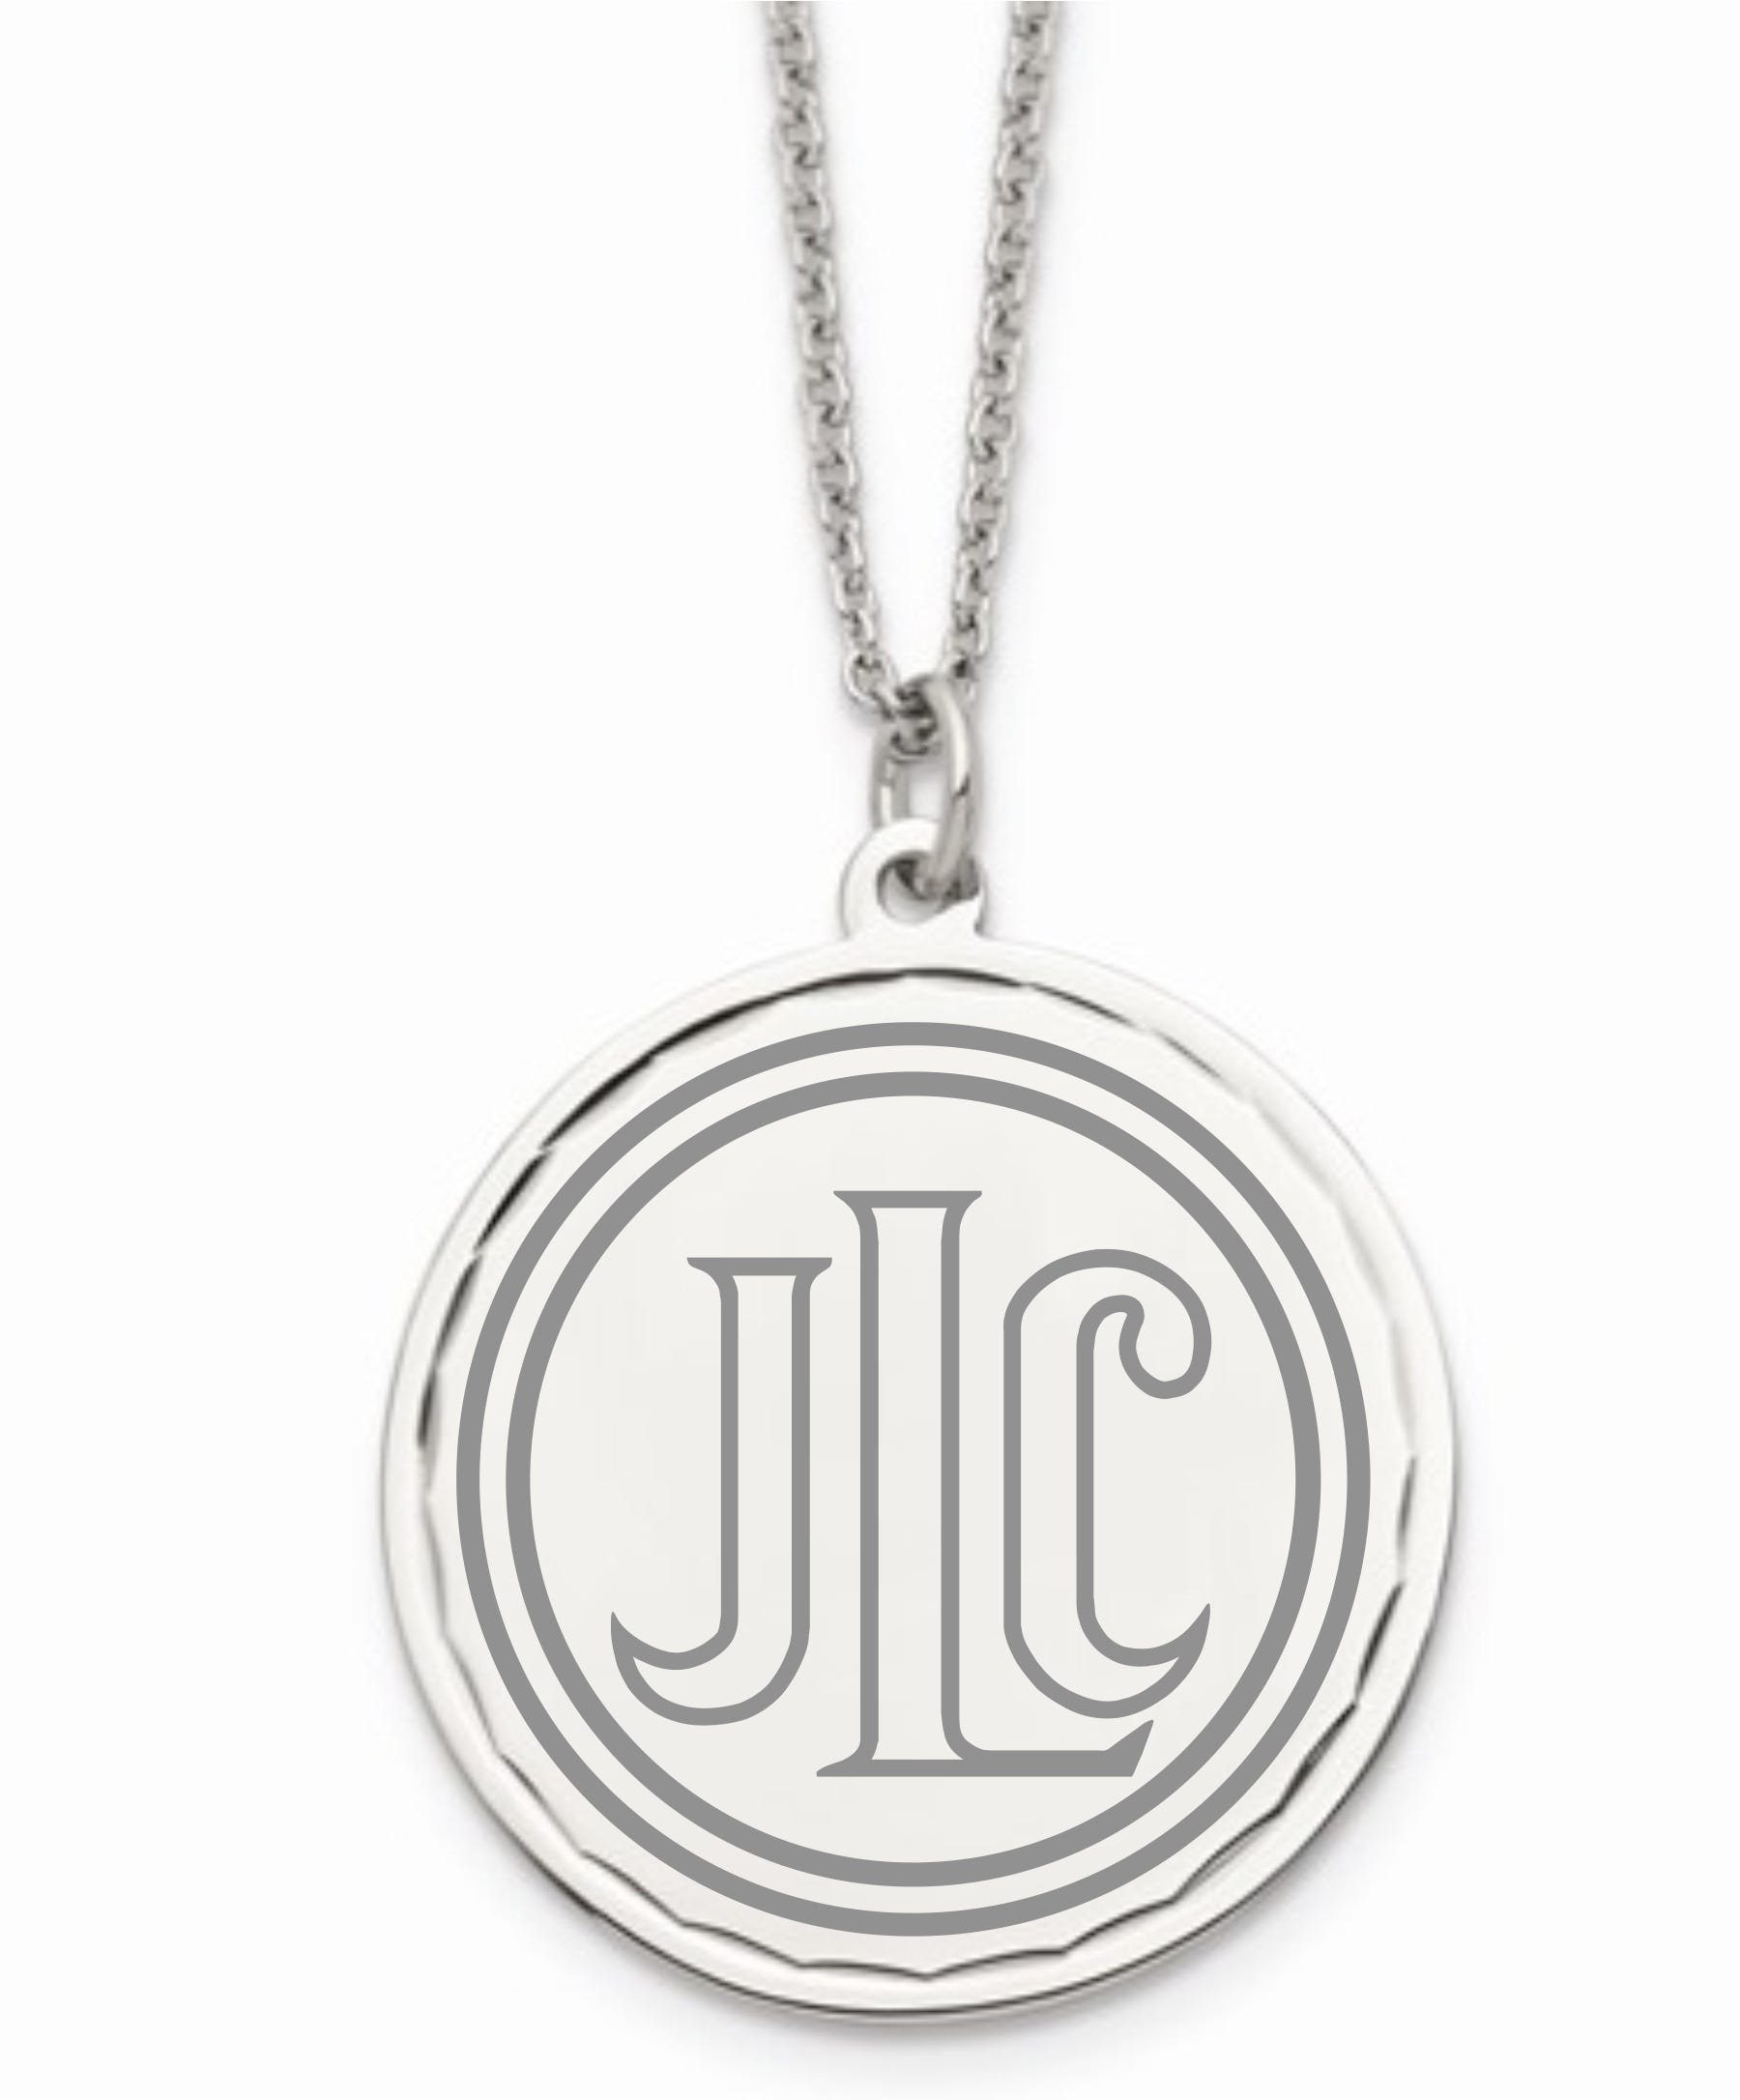 Junior League of Chicago Disc Pendant in Stainless Steel